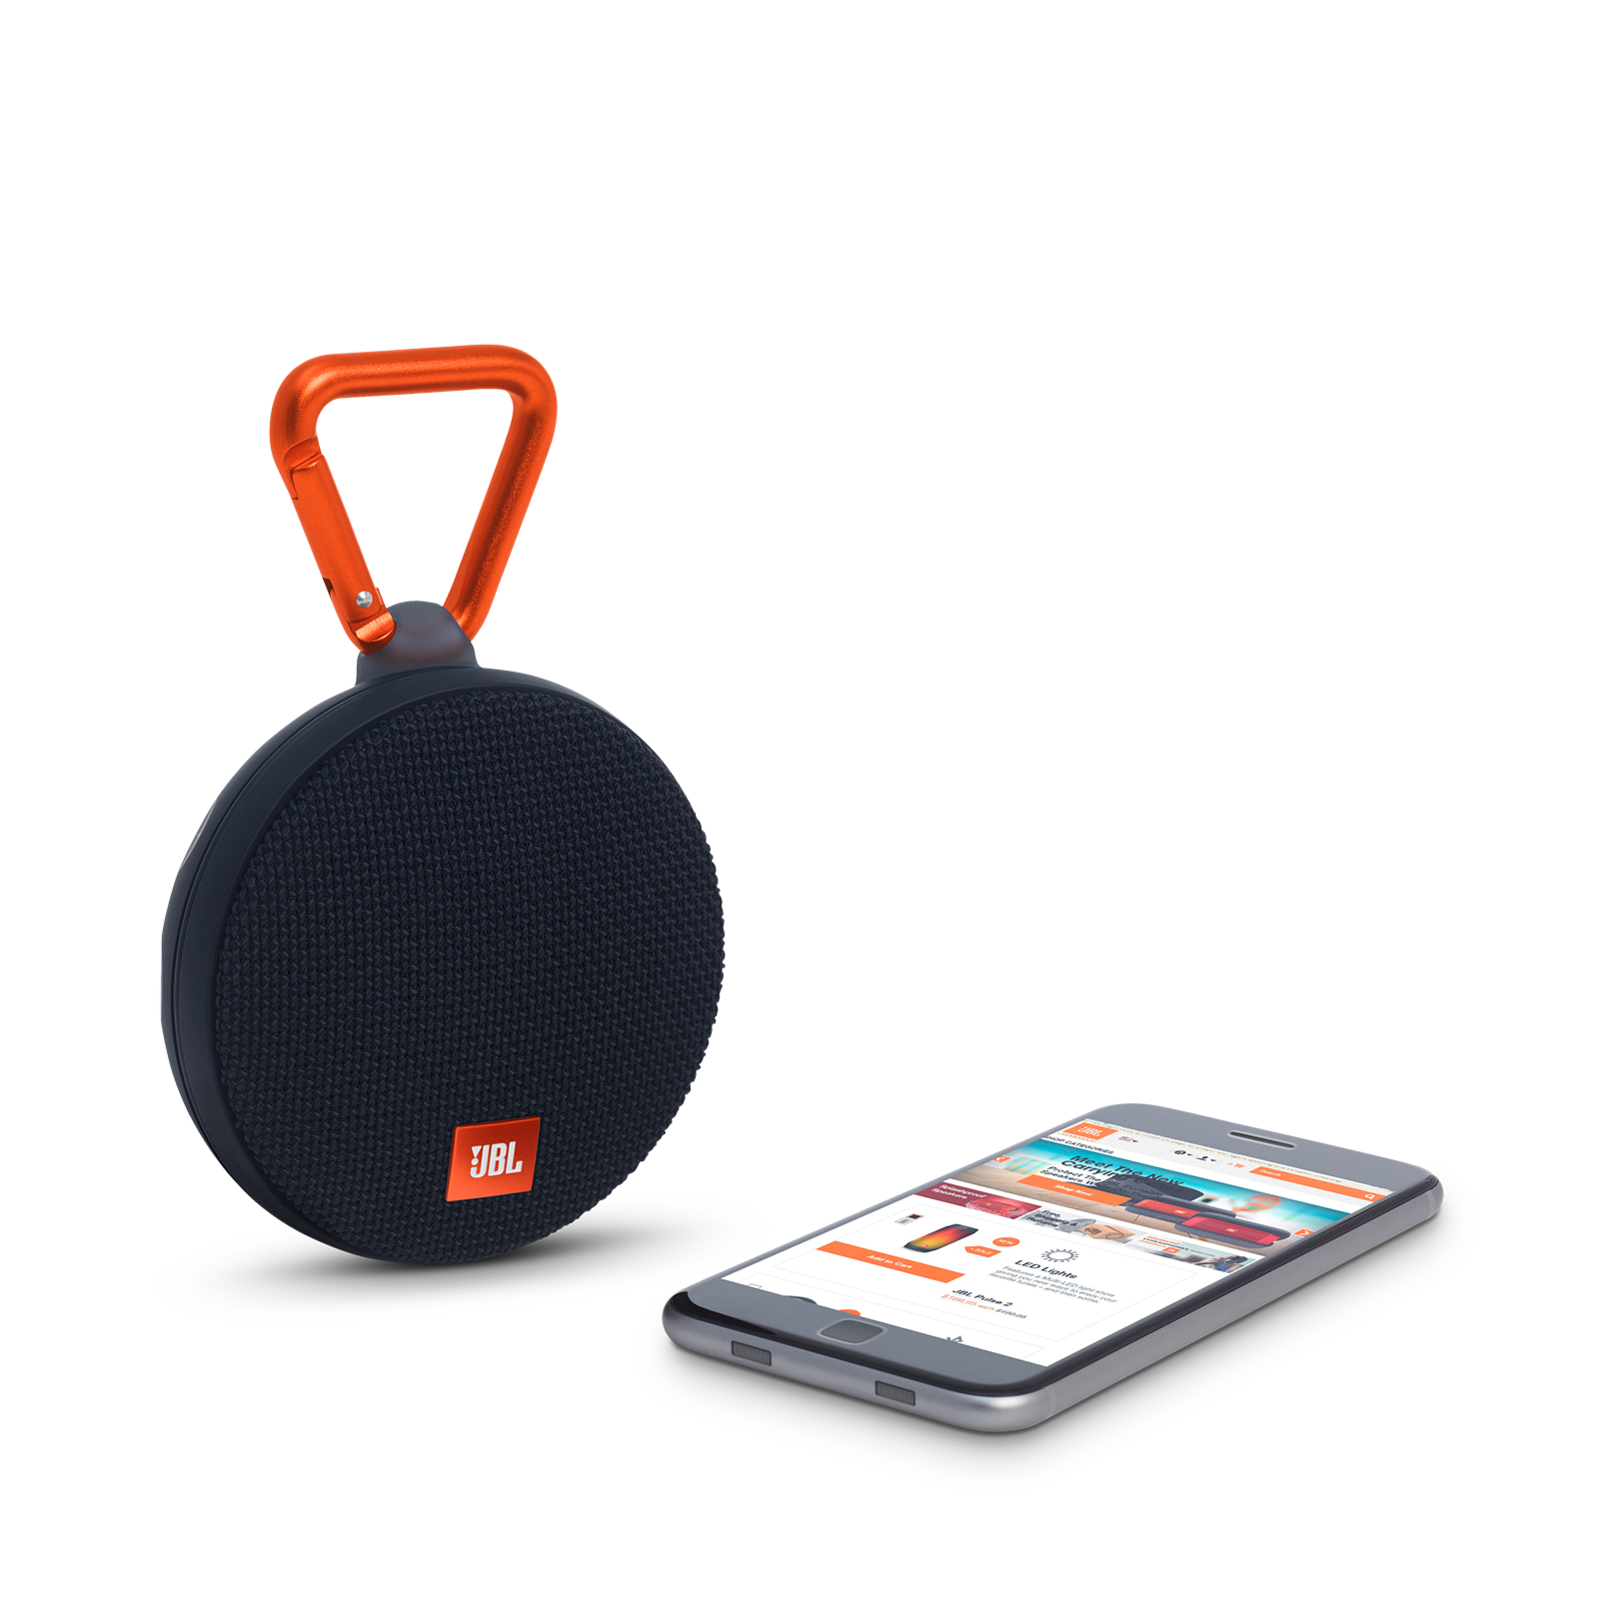 Image clip. Jbl portable bluetooth speaker